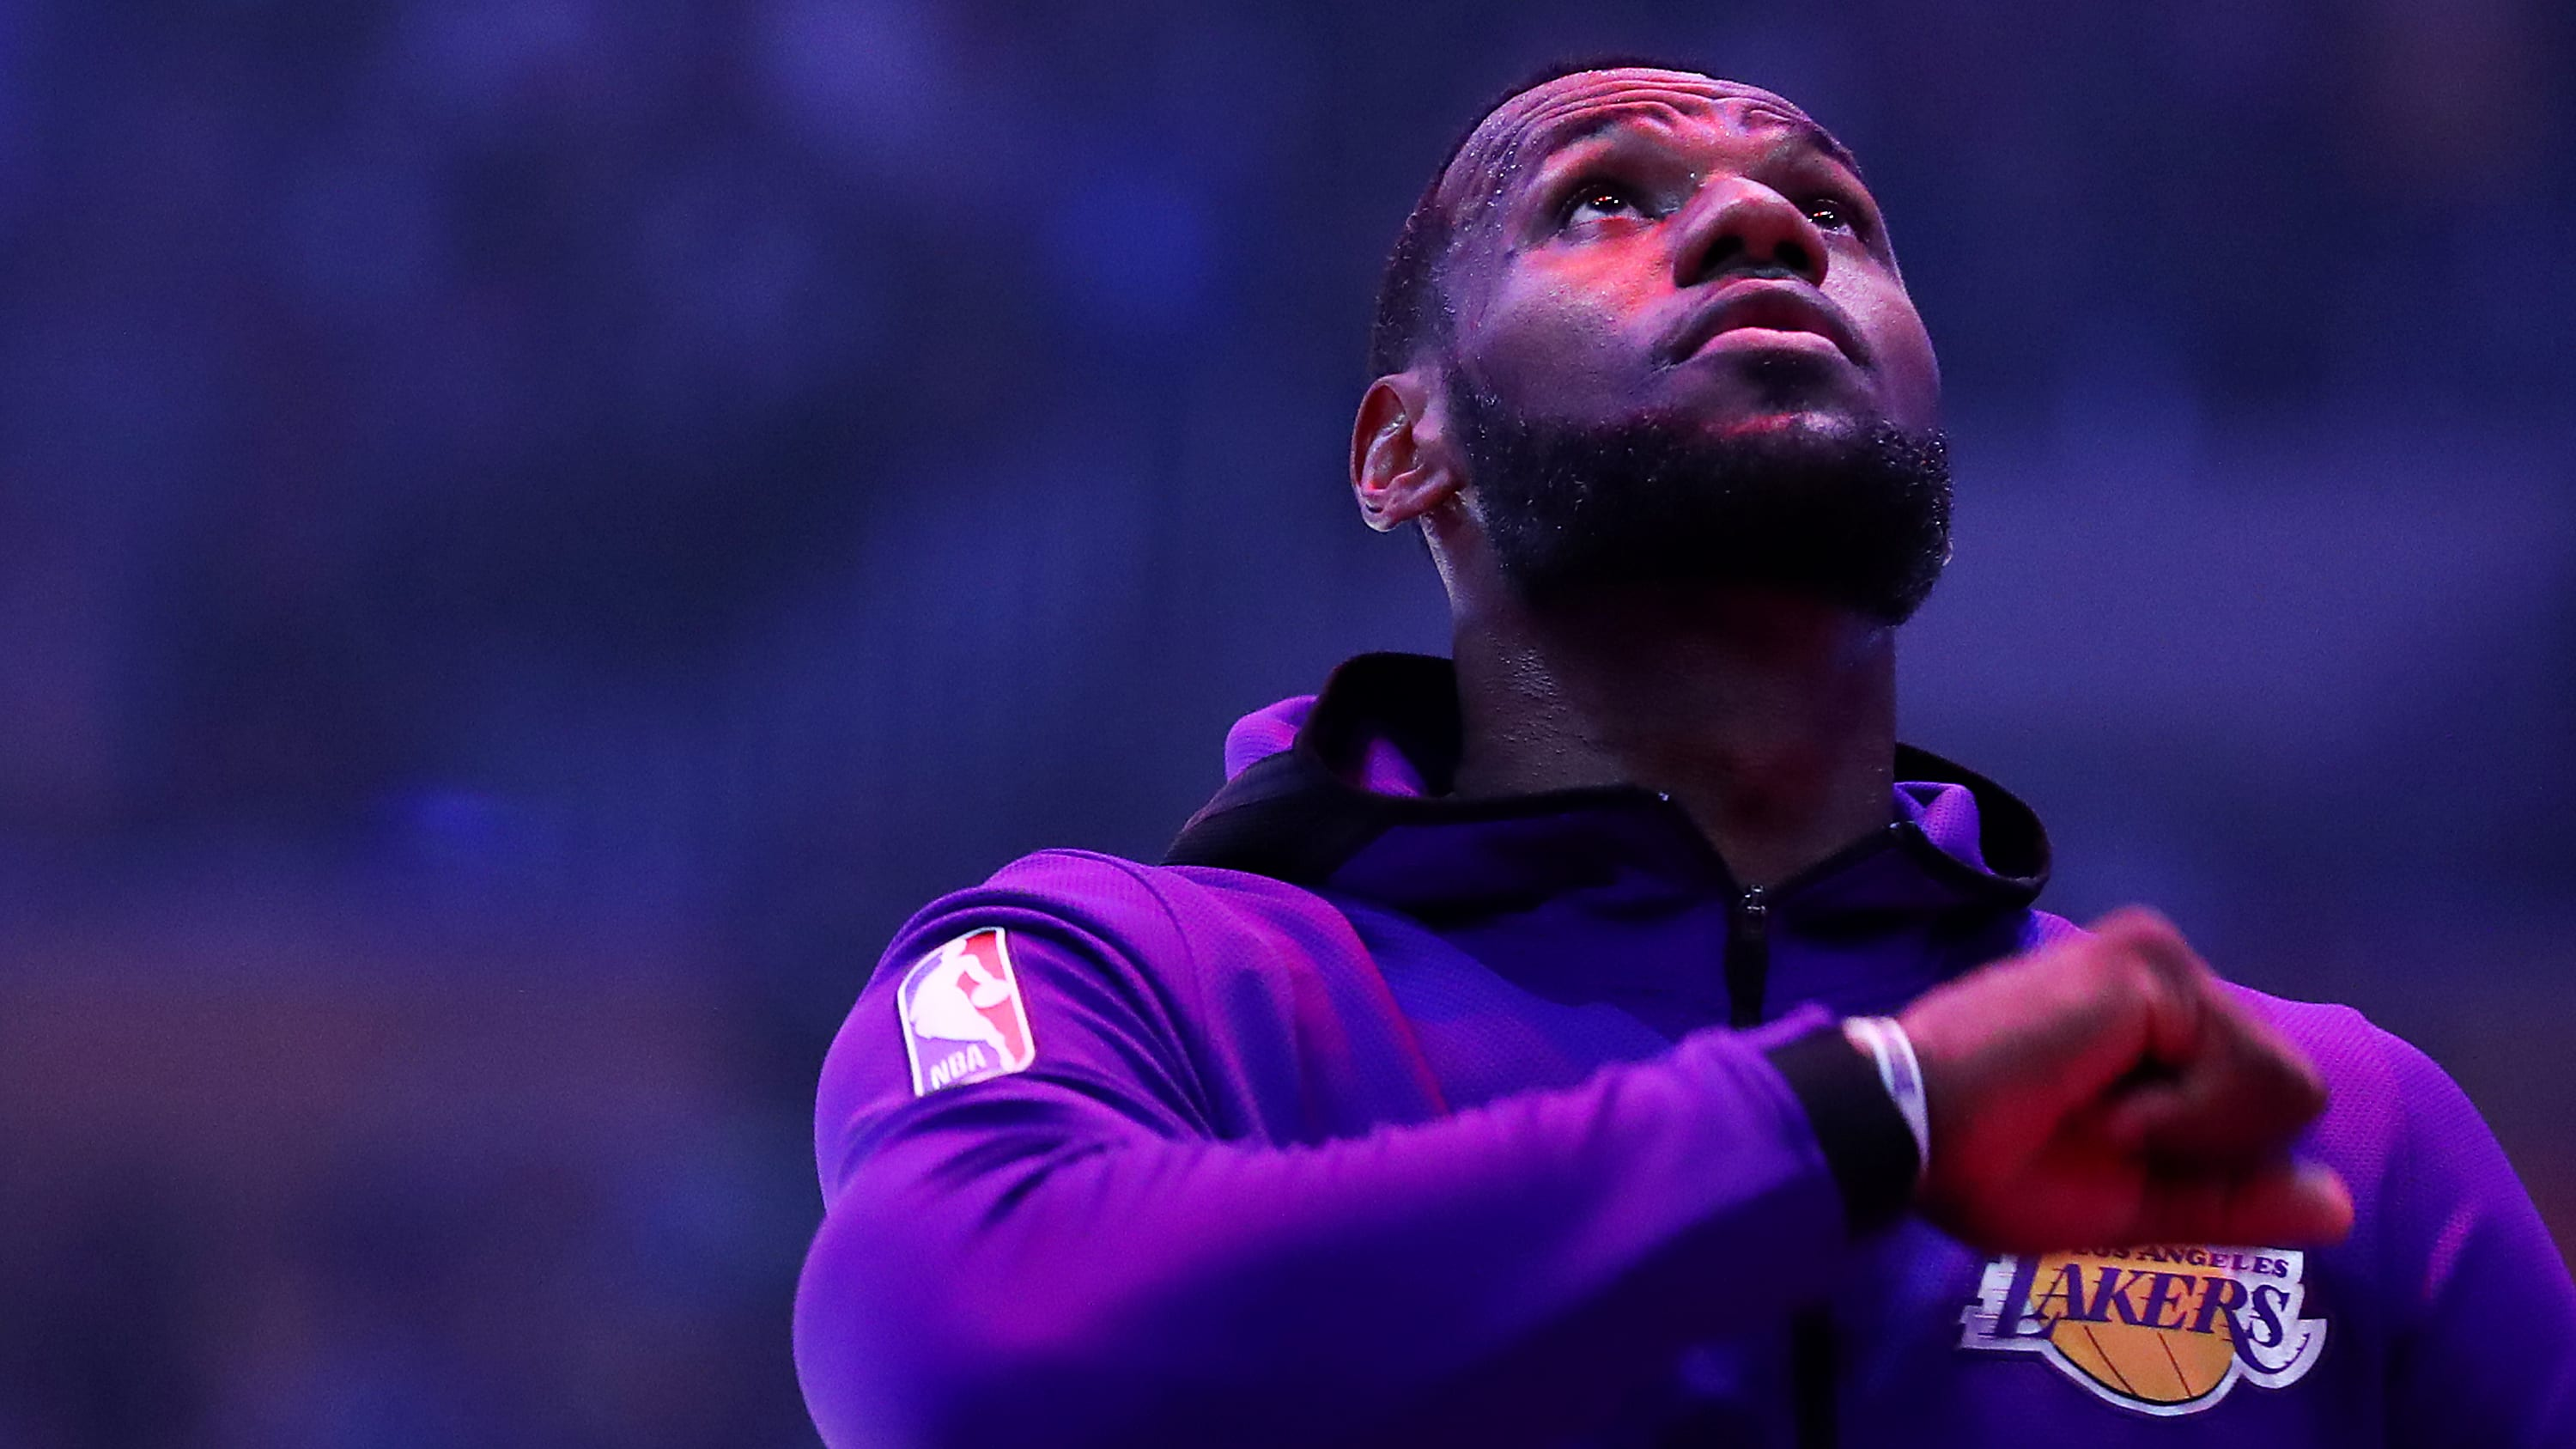 LOS ANGELES, CALIFORNIA - MARCH 26: LeBron James #23 of the Los Angeles Lakers stands for the national anthem prior to the game against the Washington Wizards at Staples Center on March 26, 2019 in Los Angeles, California. (Photo by Yong Teck Lim/Getty Images)